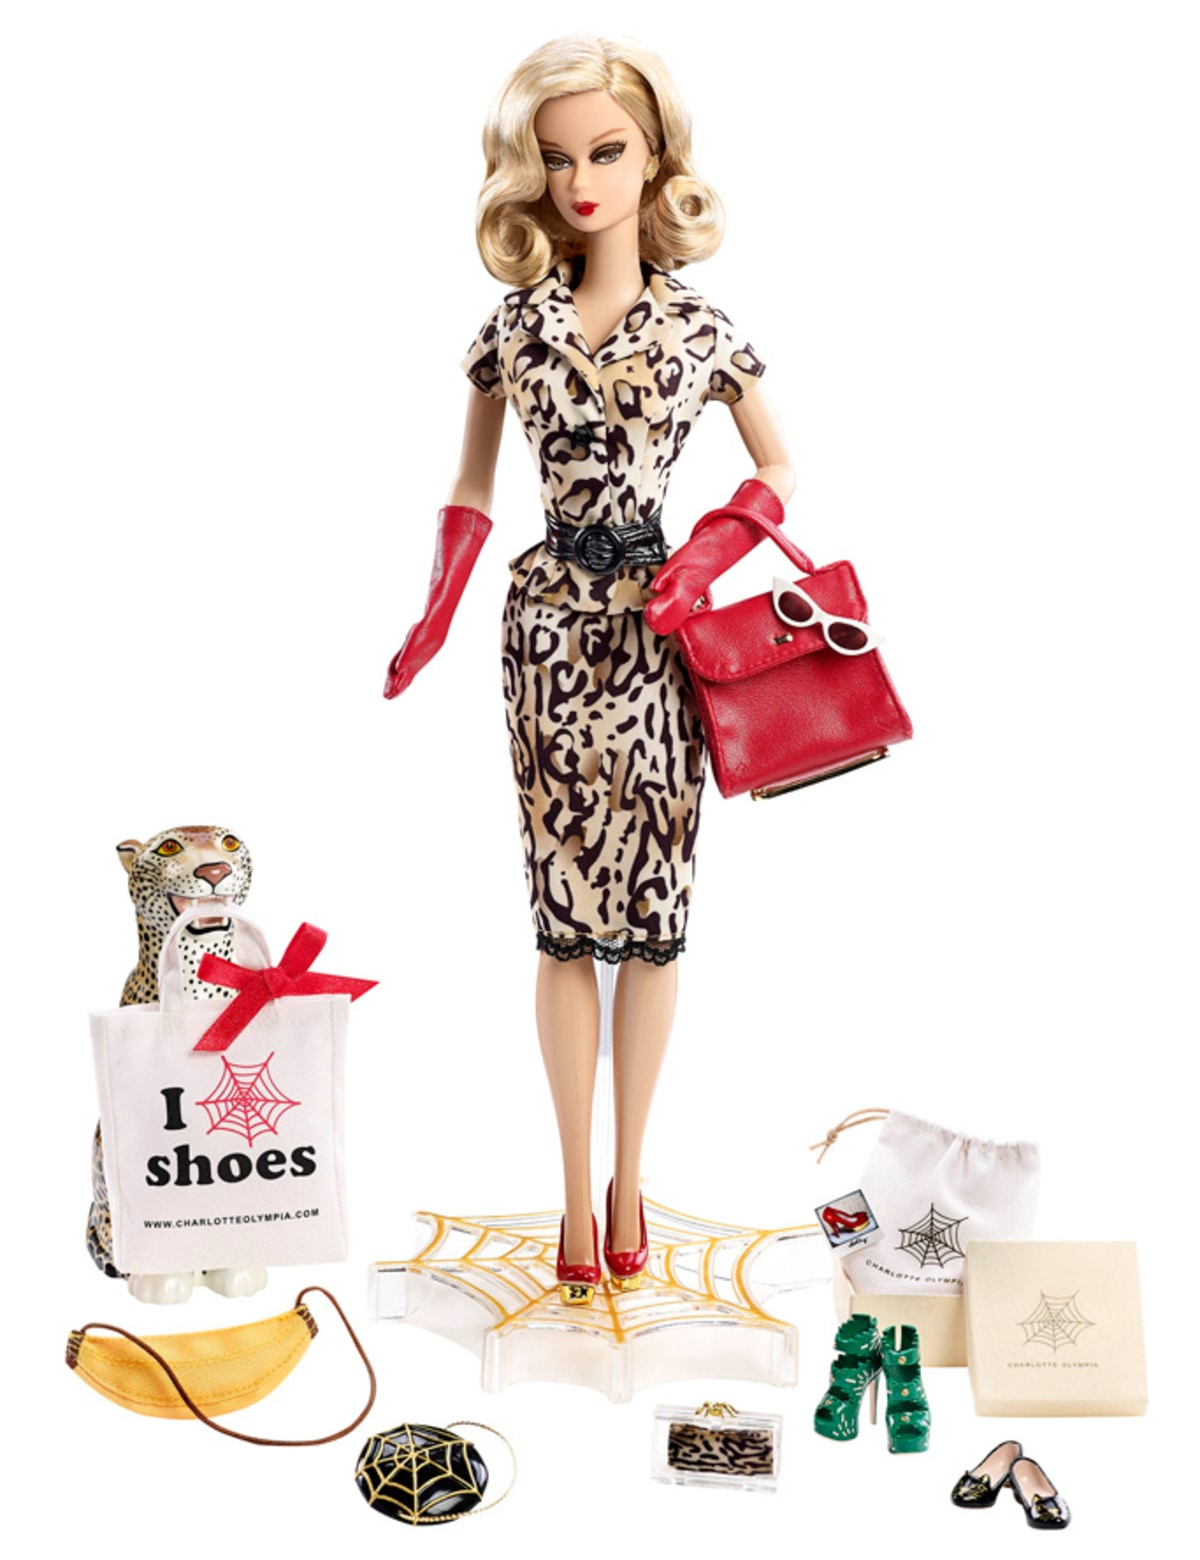 charlotte-olympia-barbie-collection-6